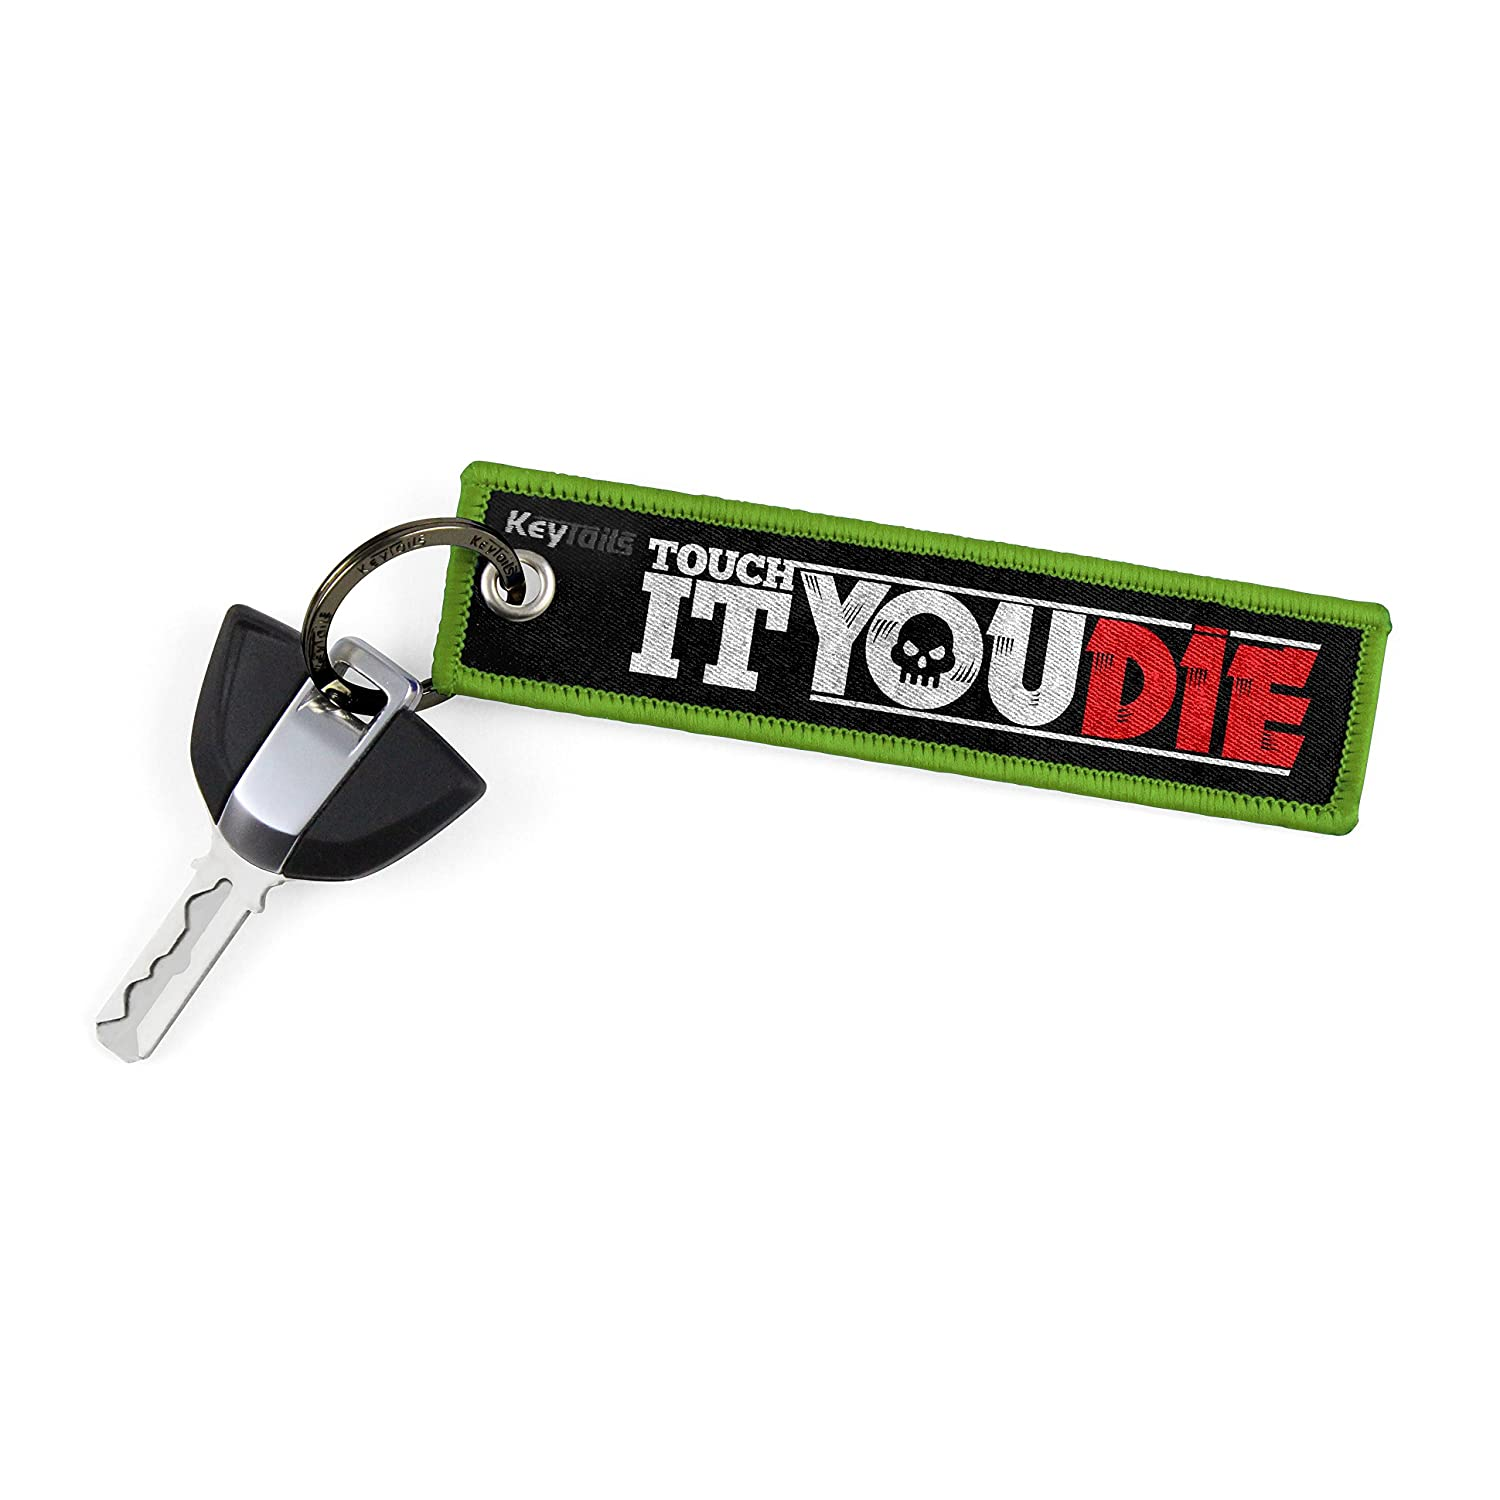 ATV KEYTAILS Keychains Scooter Touch It You Die Car Premium Quality Key Tag for Motorcycle UTV